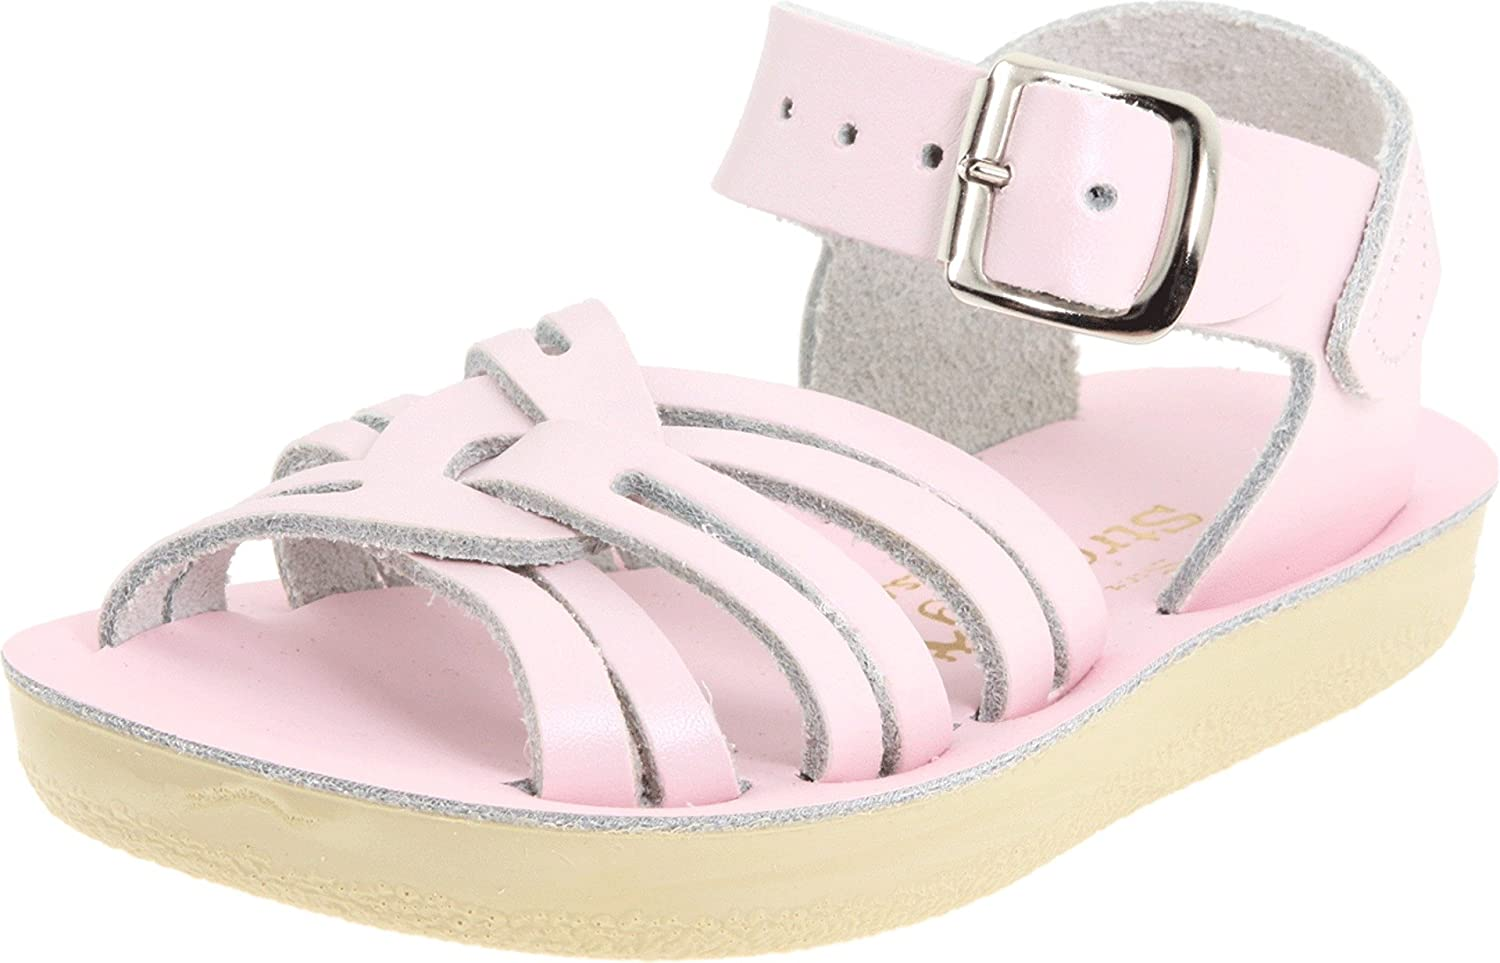 Salt Water Sandals by Hoy Shoe Strappy Sandal (Toddler/Little Kid/Big Kid/Women's) Saltwater by Hoy Style 8100 - K